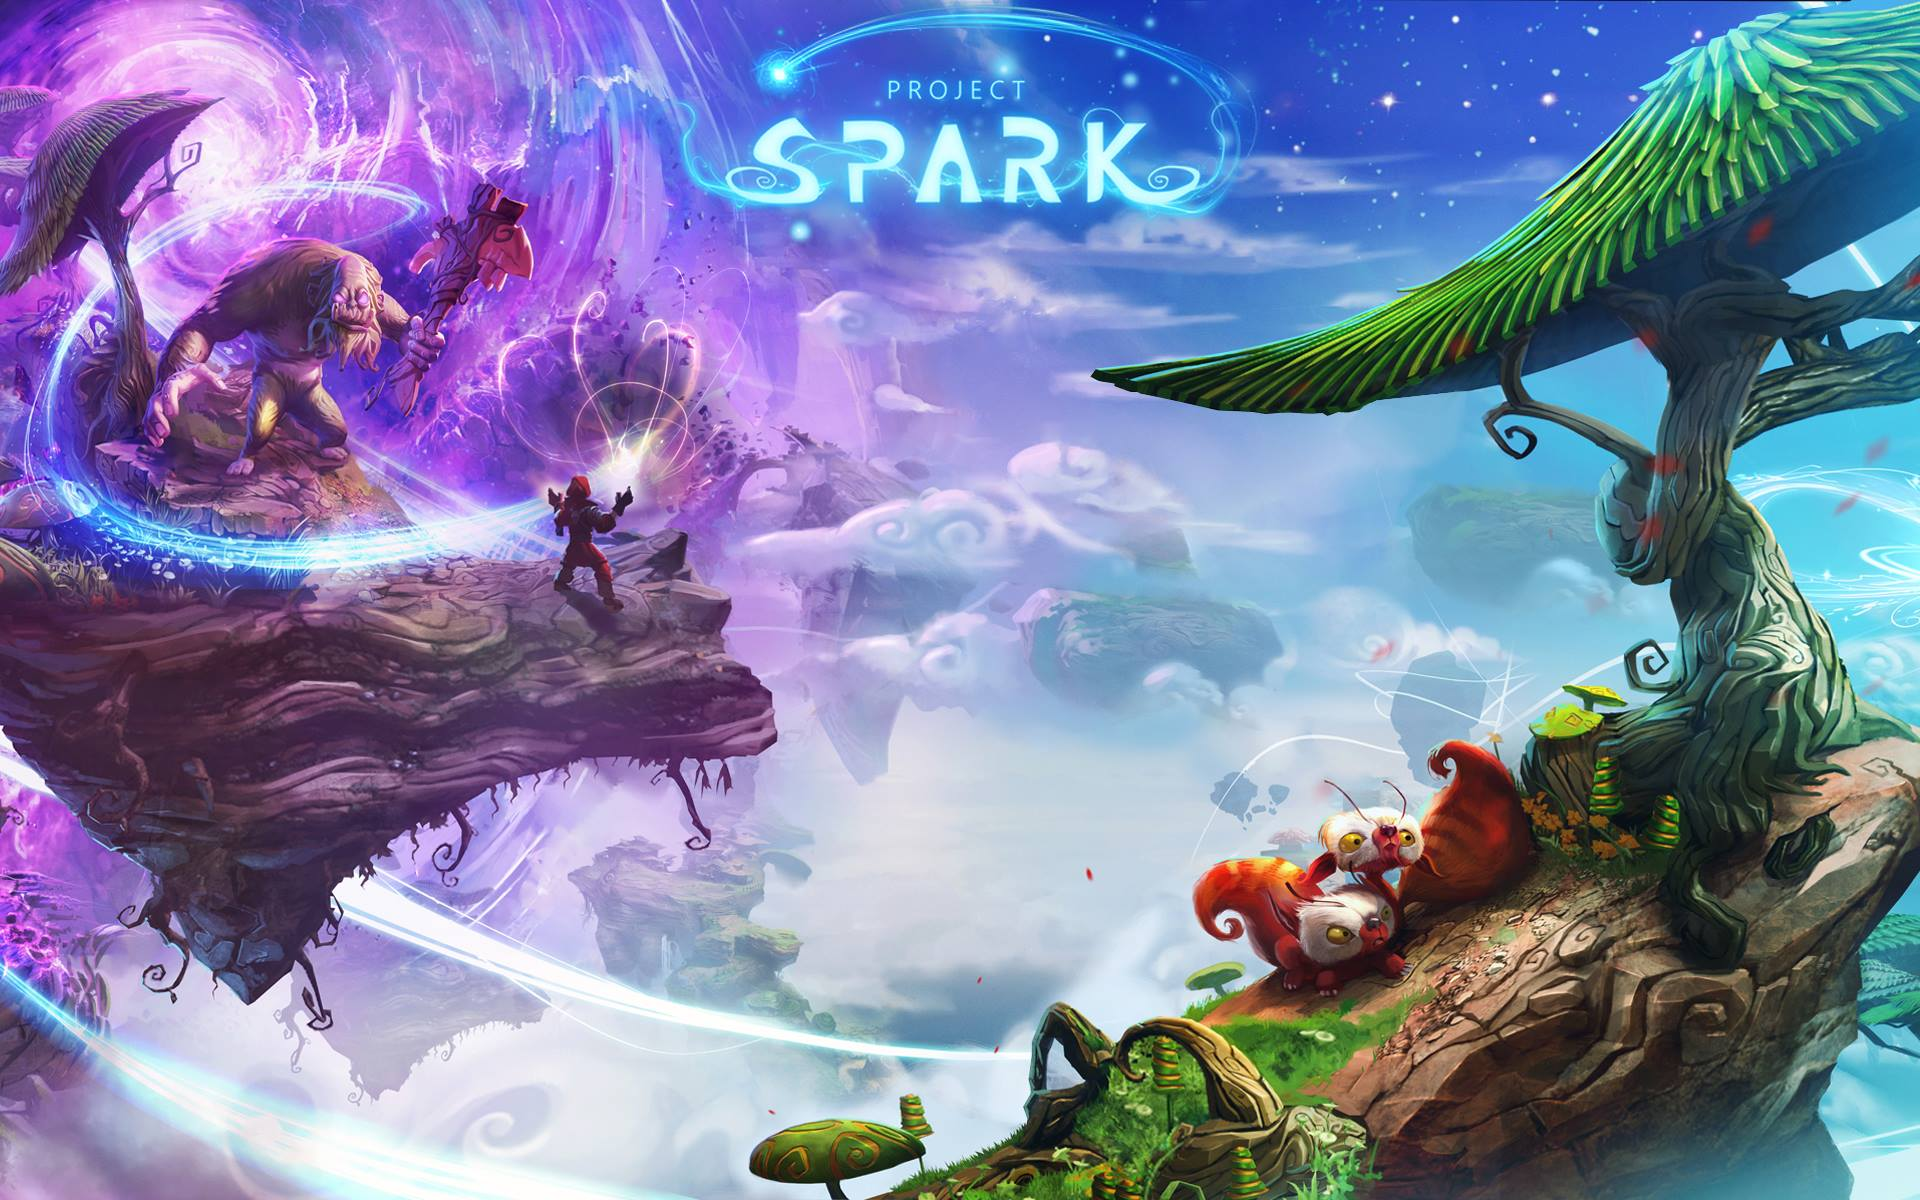 Ambitious Xbox One game-builder Project Spark hits open beta today